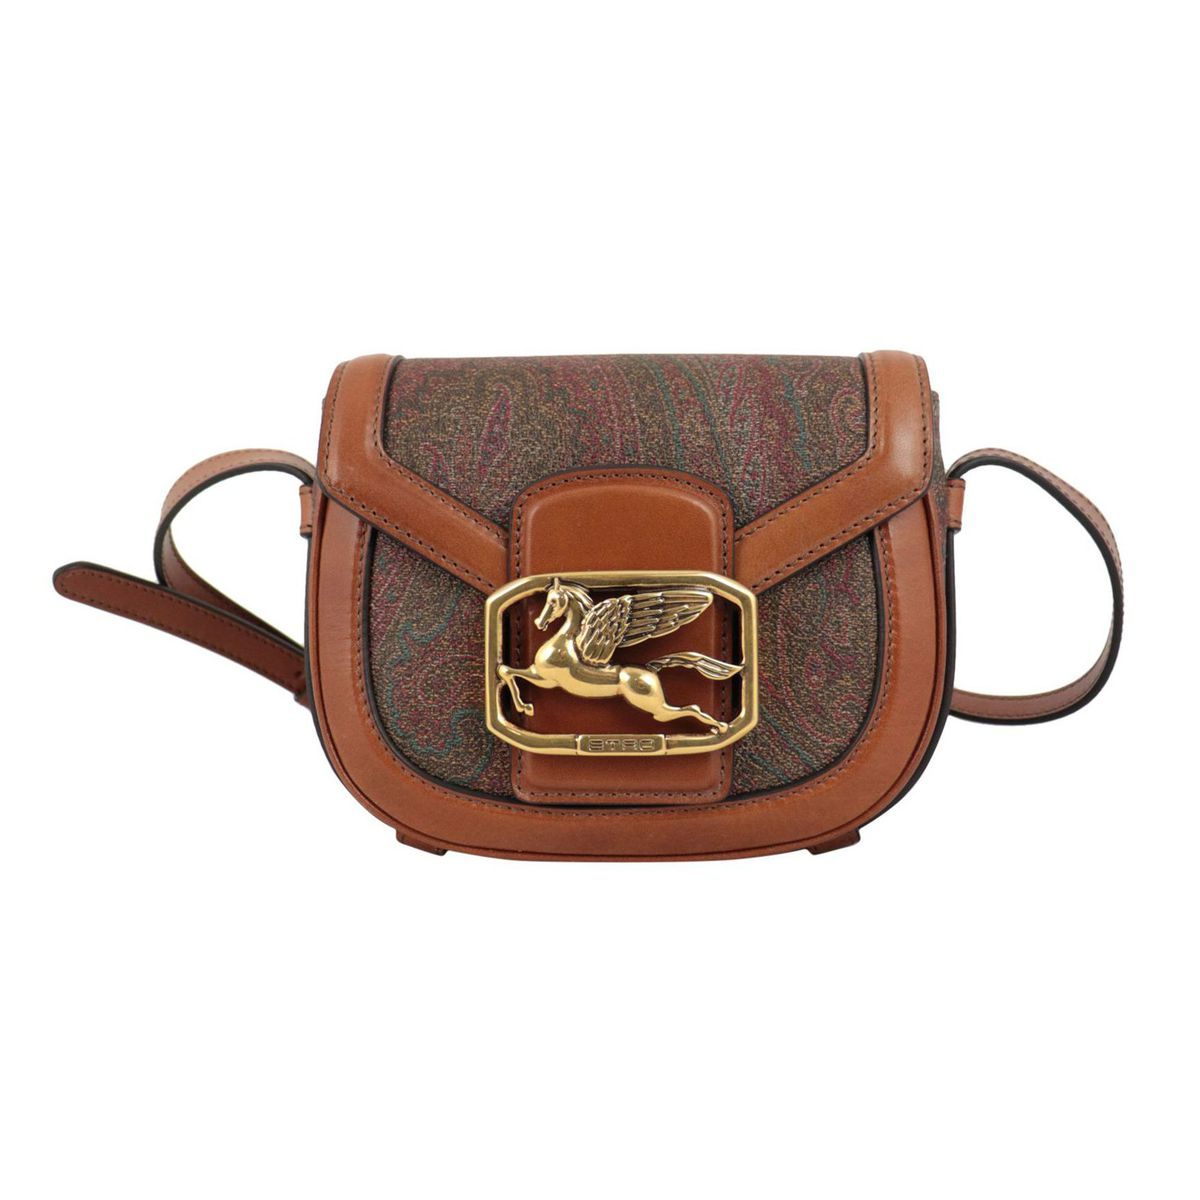 Pegaso shoulder bag in coated cotton canvas with leather Paisley print Leather Etro